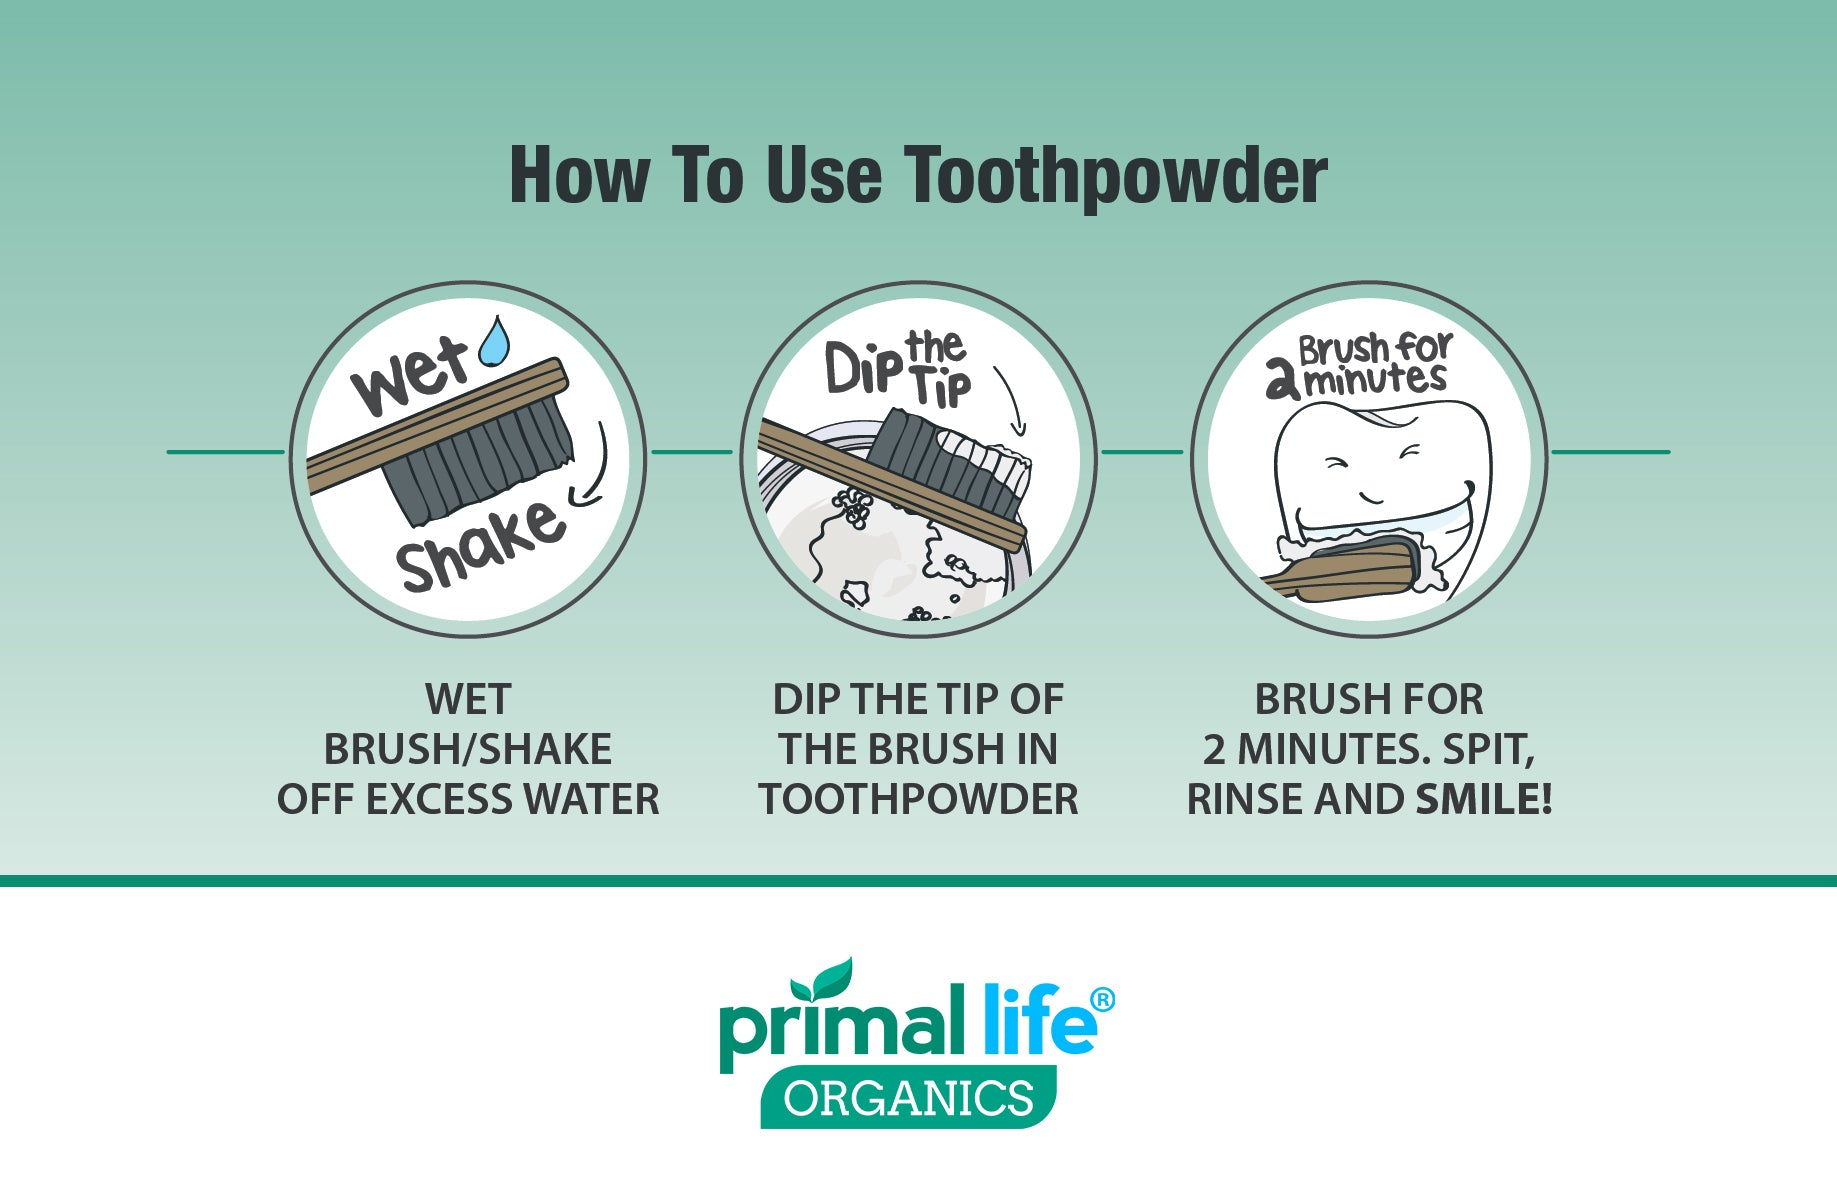 Directions for Use Toothpowder